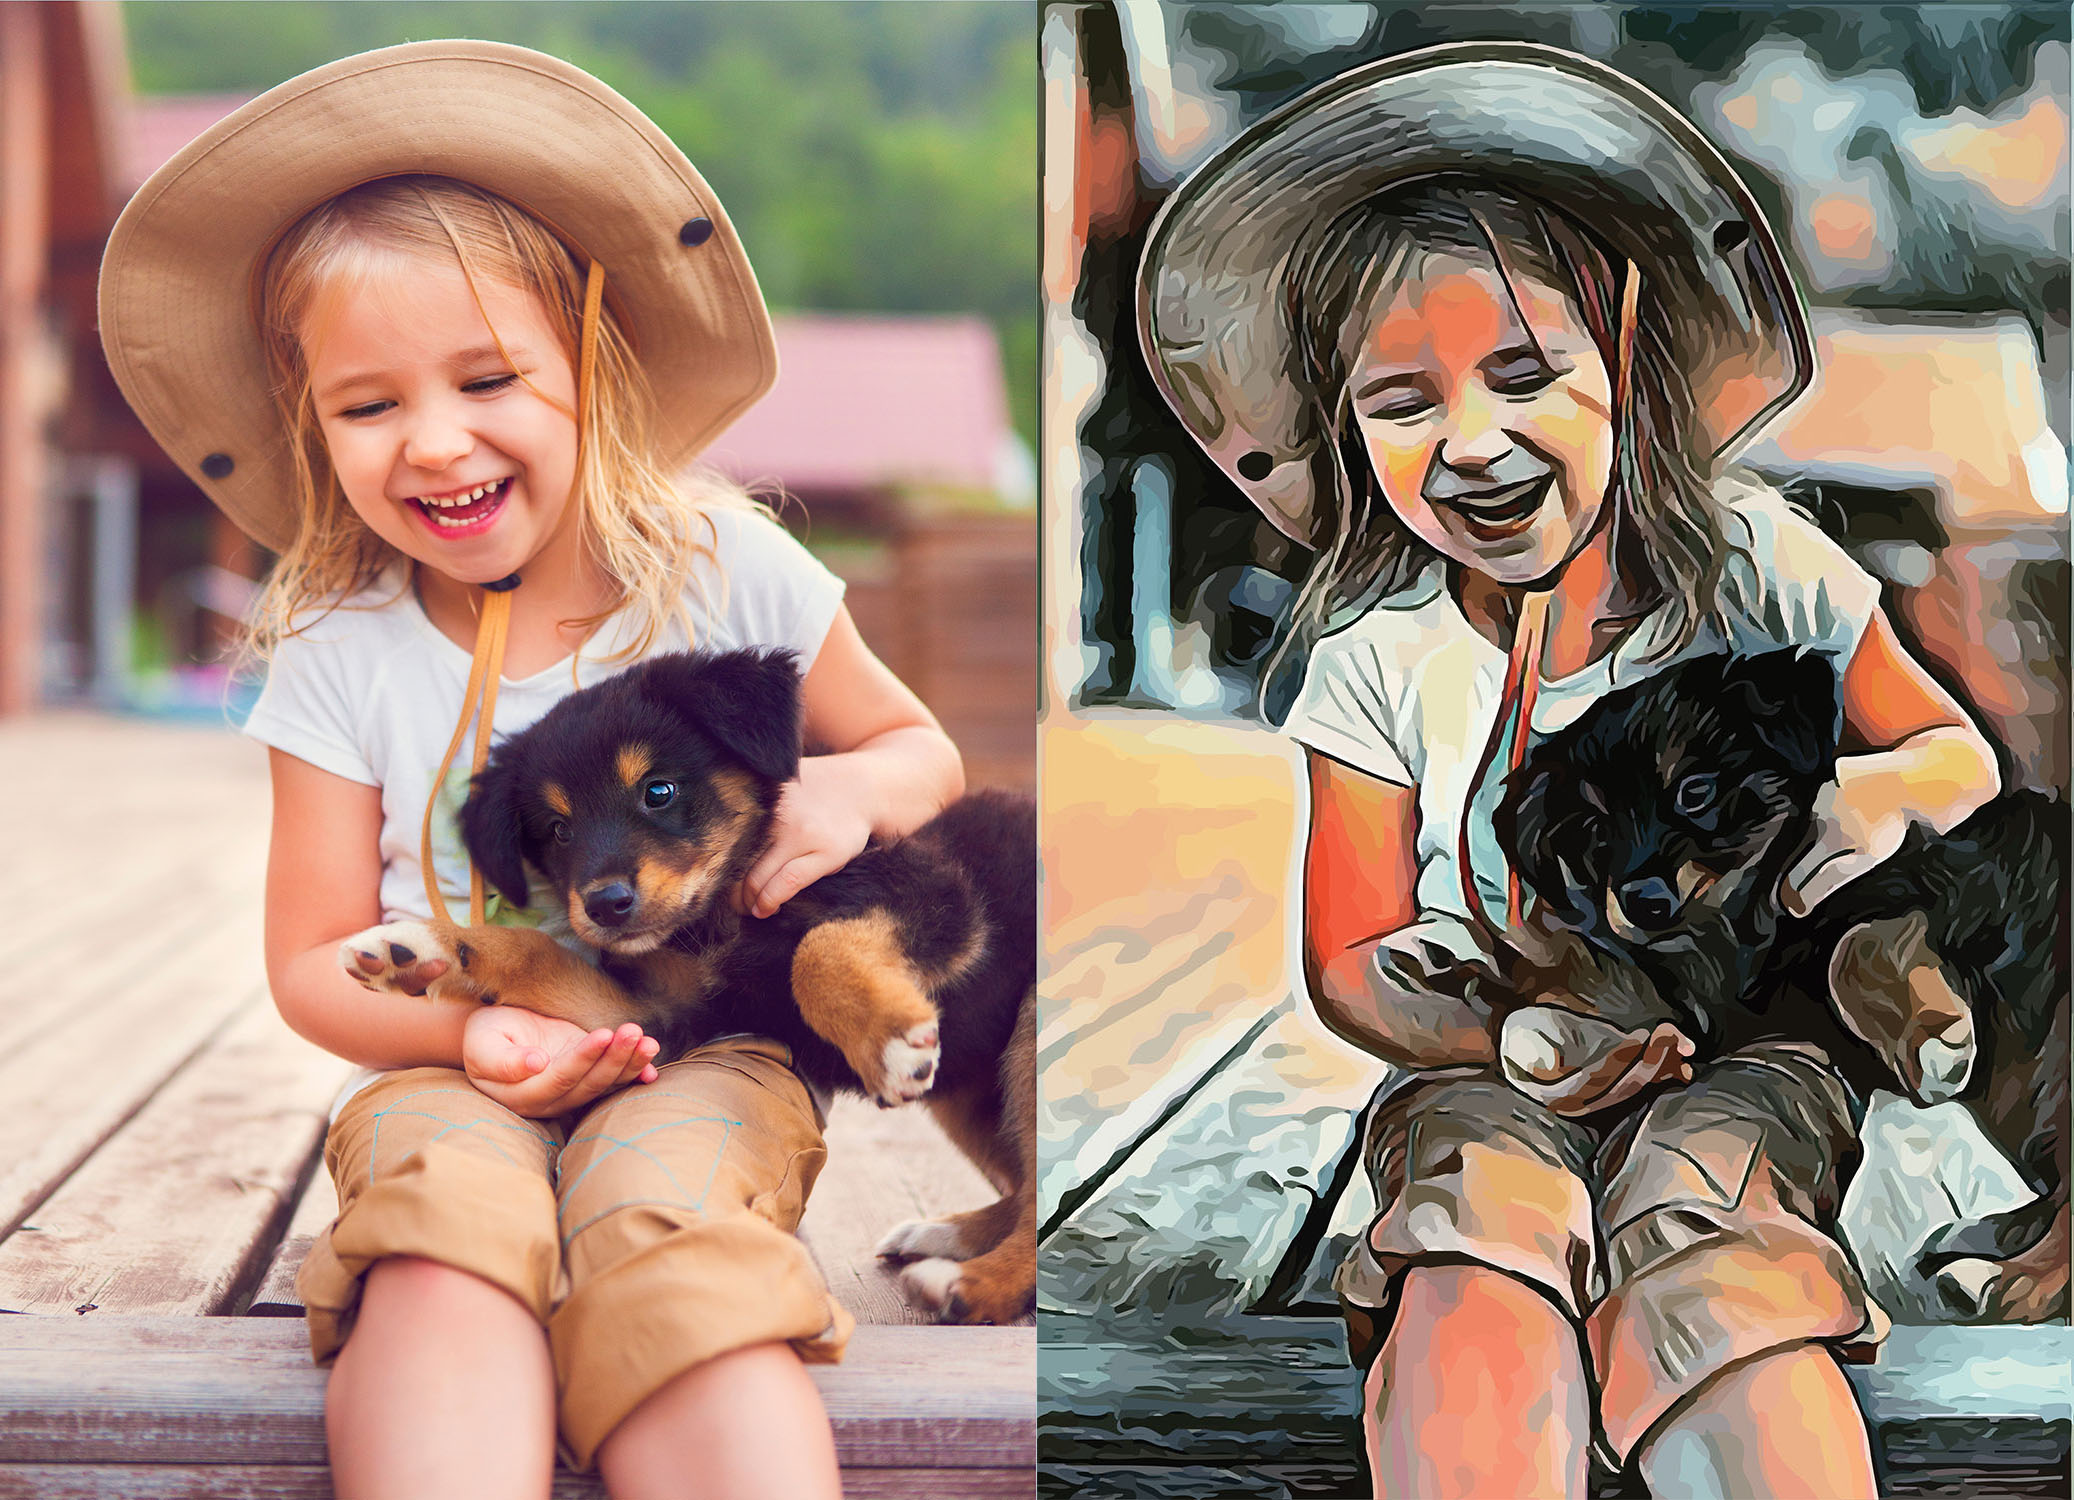 Before and after stylized image of a girl in a hat holding a black and gold puppy